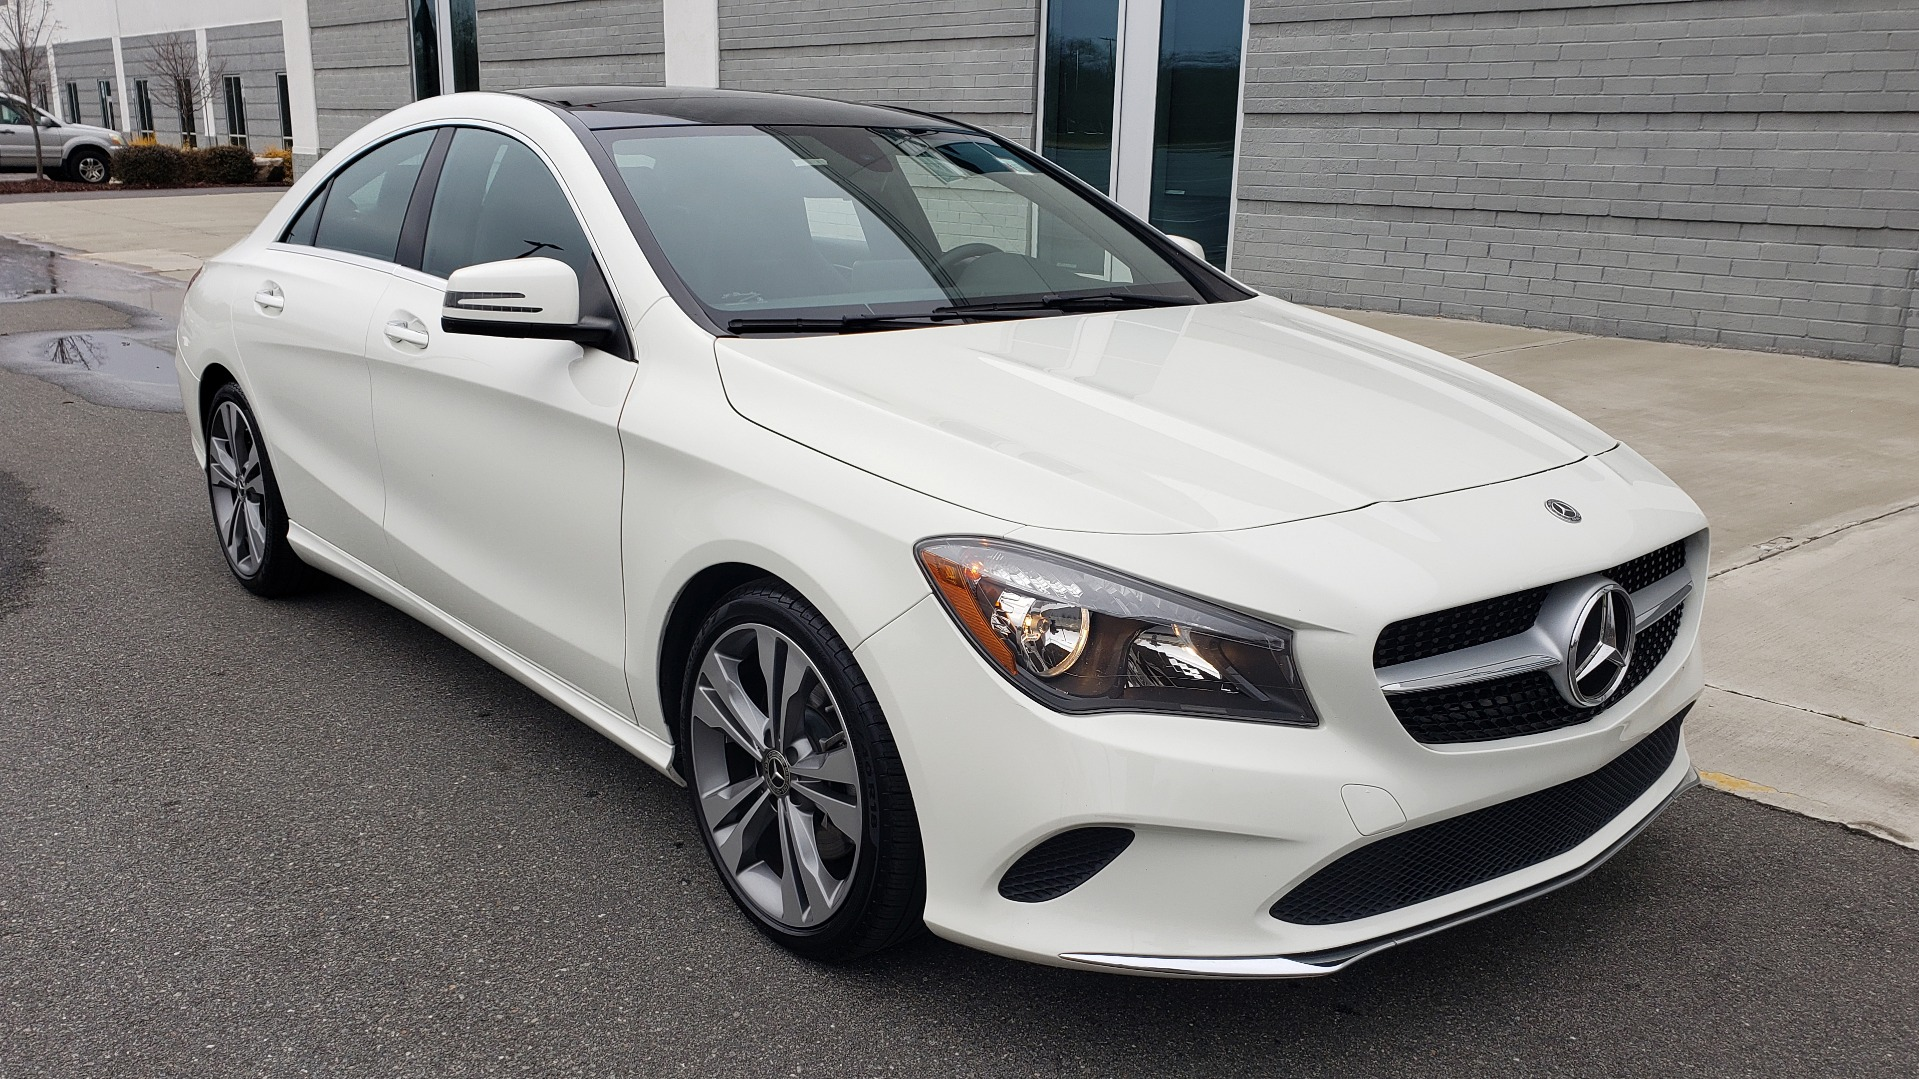 Used 2018 Mercedes-Benz CLA 250 PREMIUM / NAV / PANO-ROOF / APPLE CARPLAY / REARVIEW for sale $23,995 at Formula Imports in Charlotte NC 28227 6